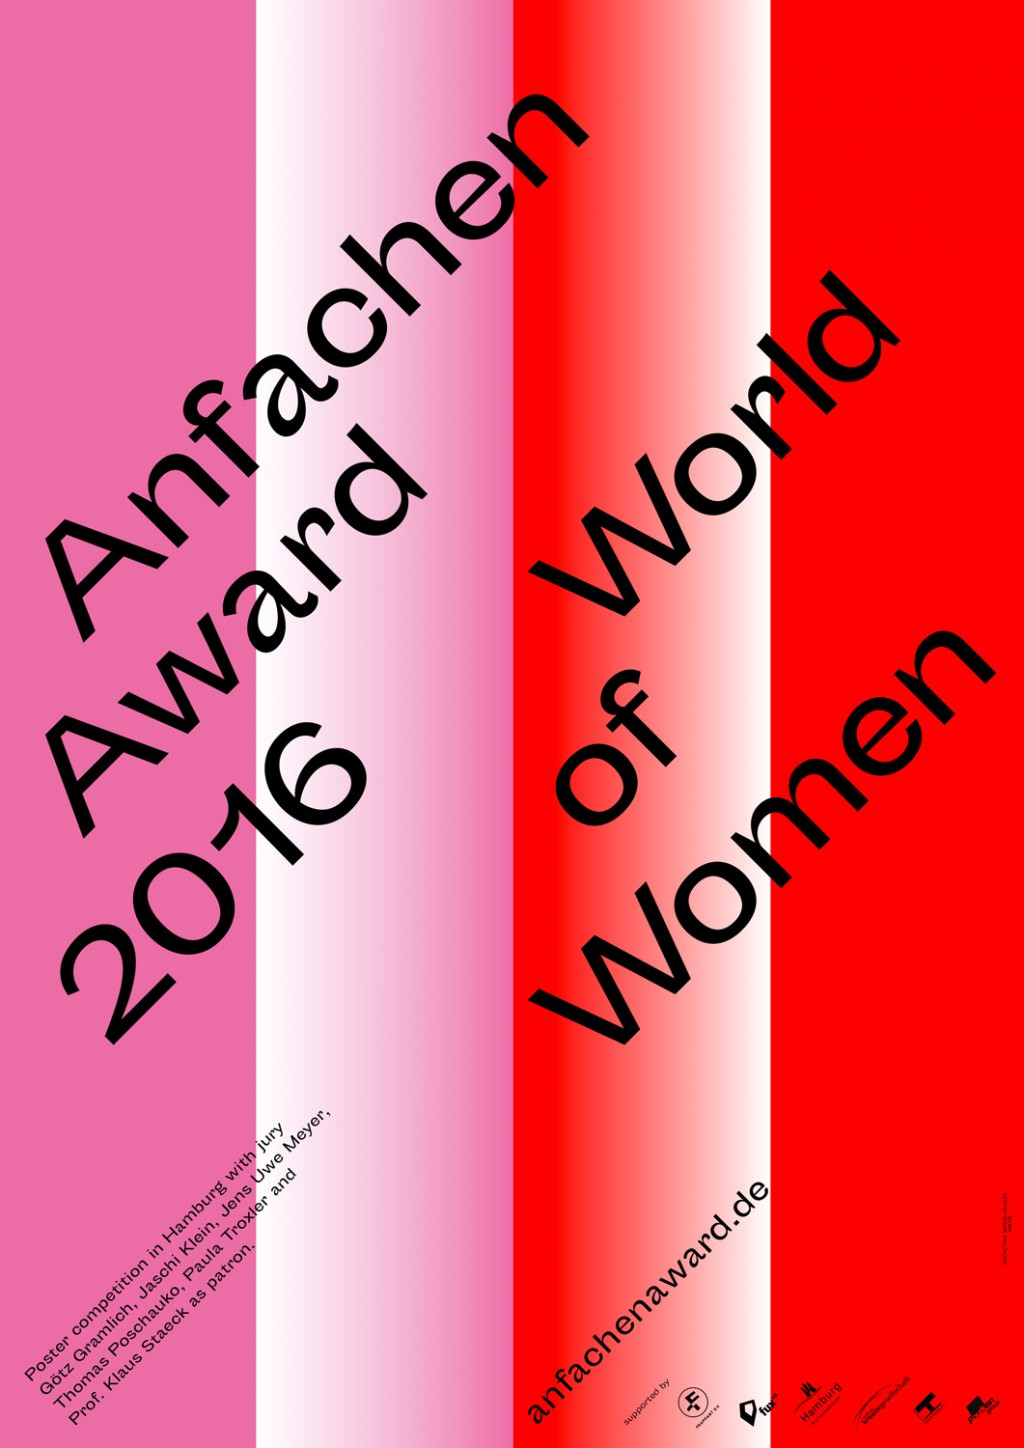 MARCEL HÄUSLER Anfachen Award — World Of Women